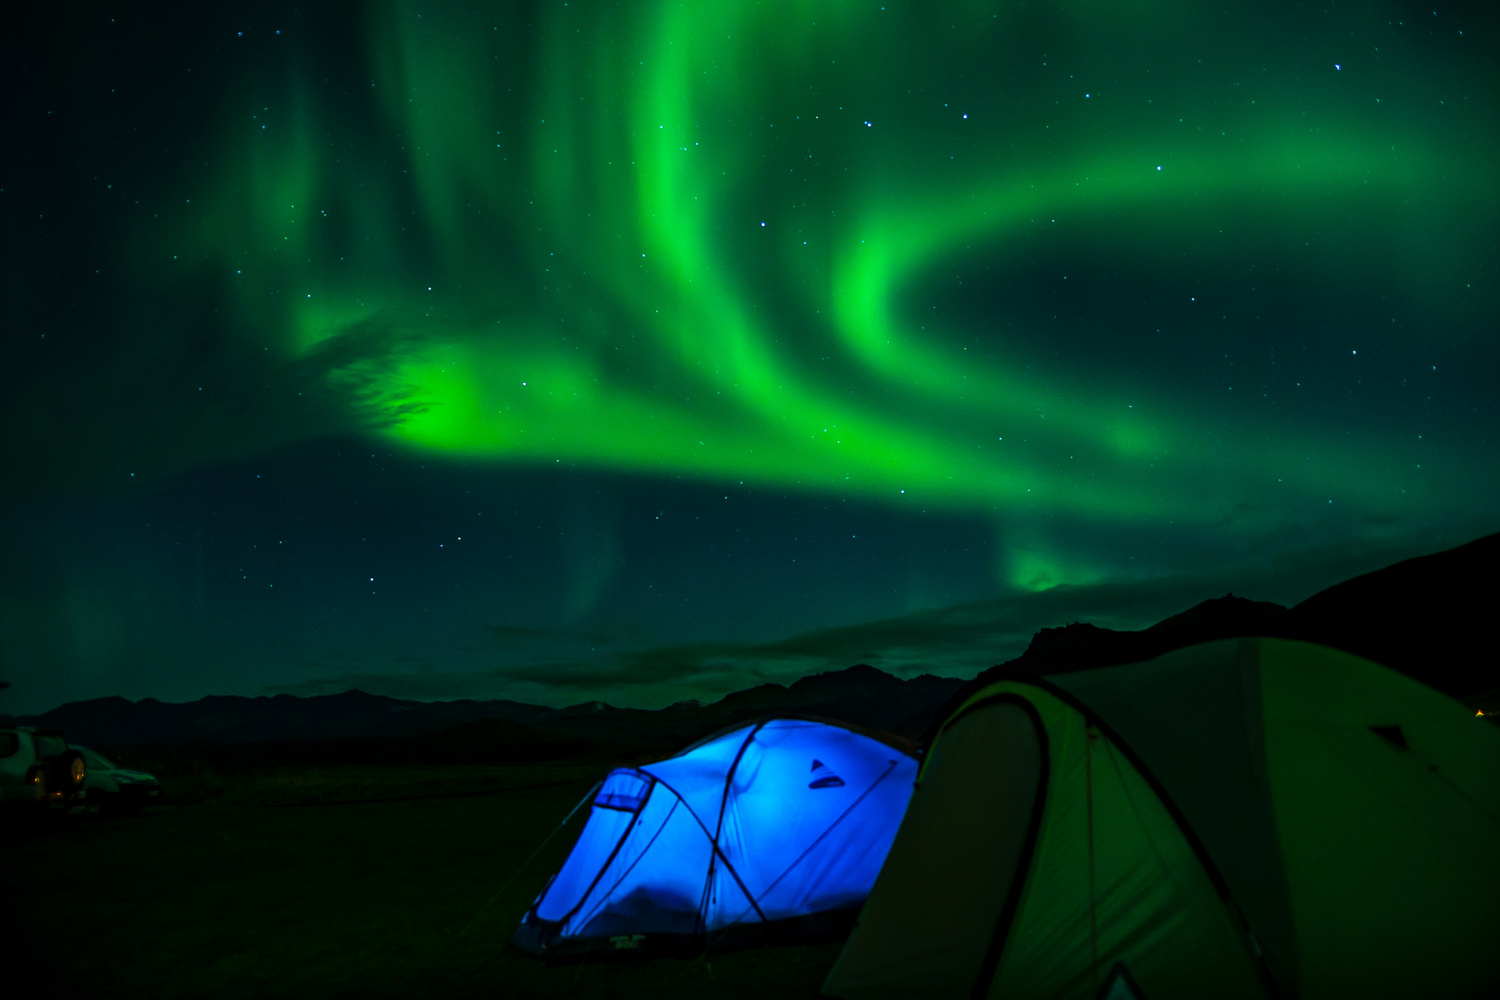 Camping under Northern Lights in Iceland by Boopathi Rajaa